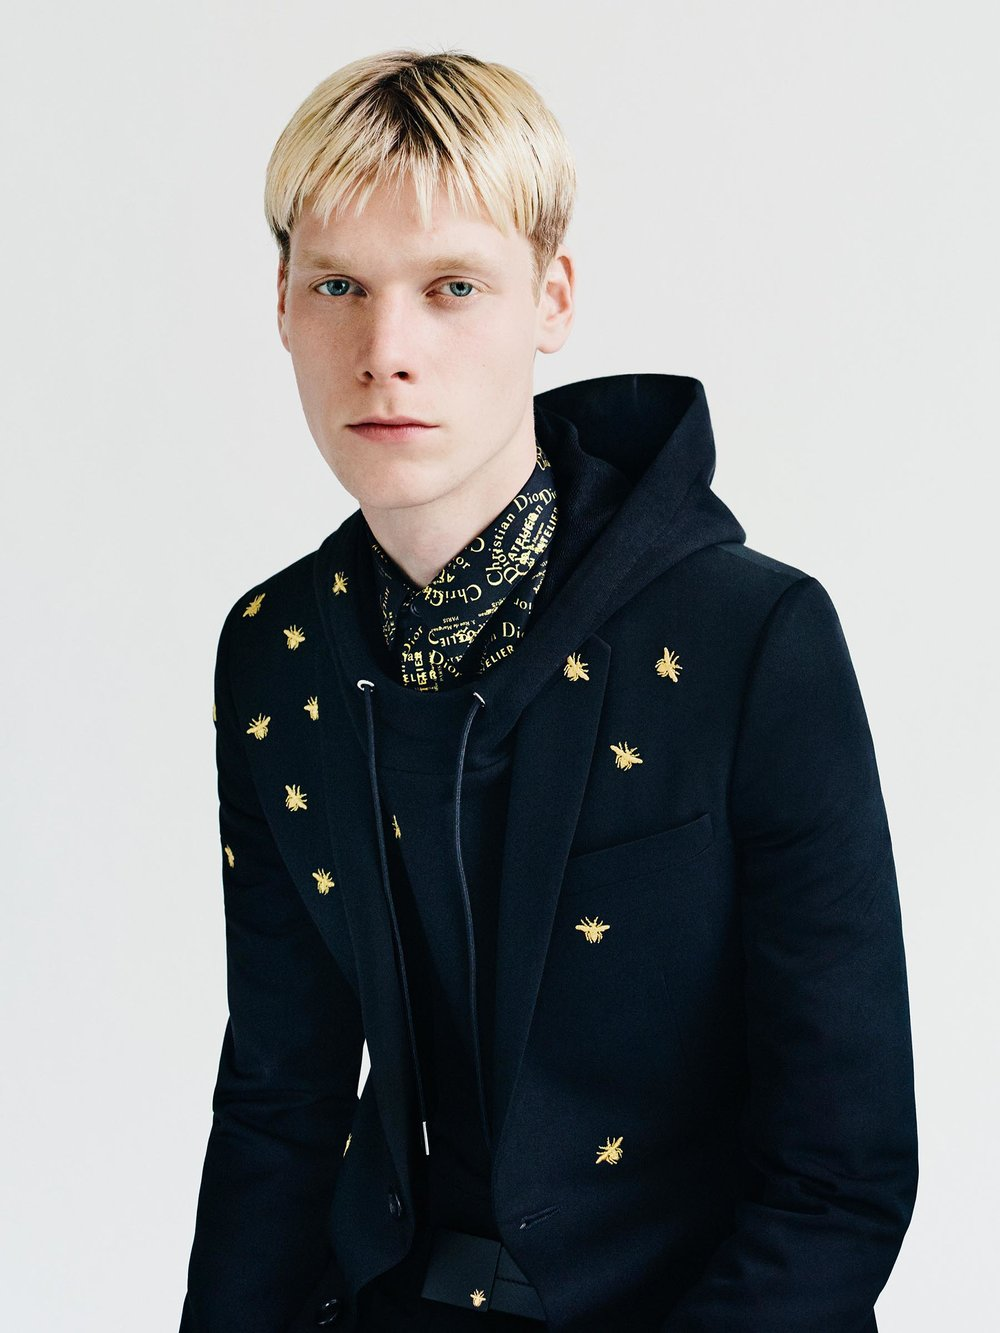 Dior-Homme-gold-capsule-collection-the-impression-03.jpg